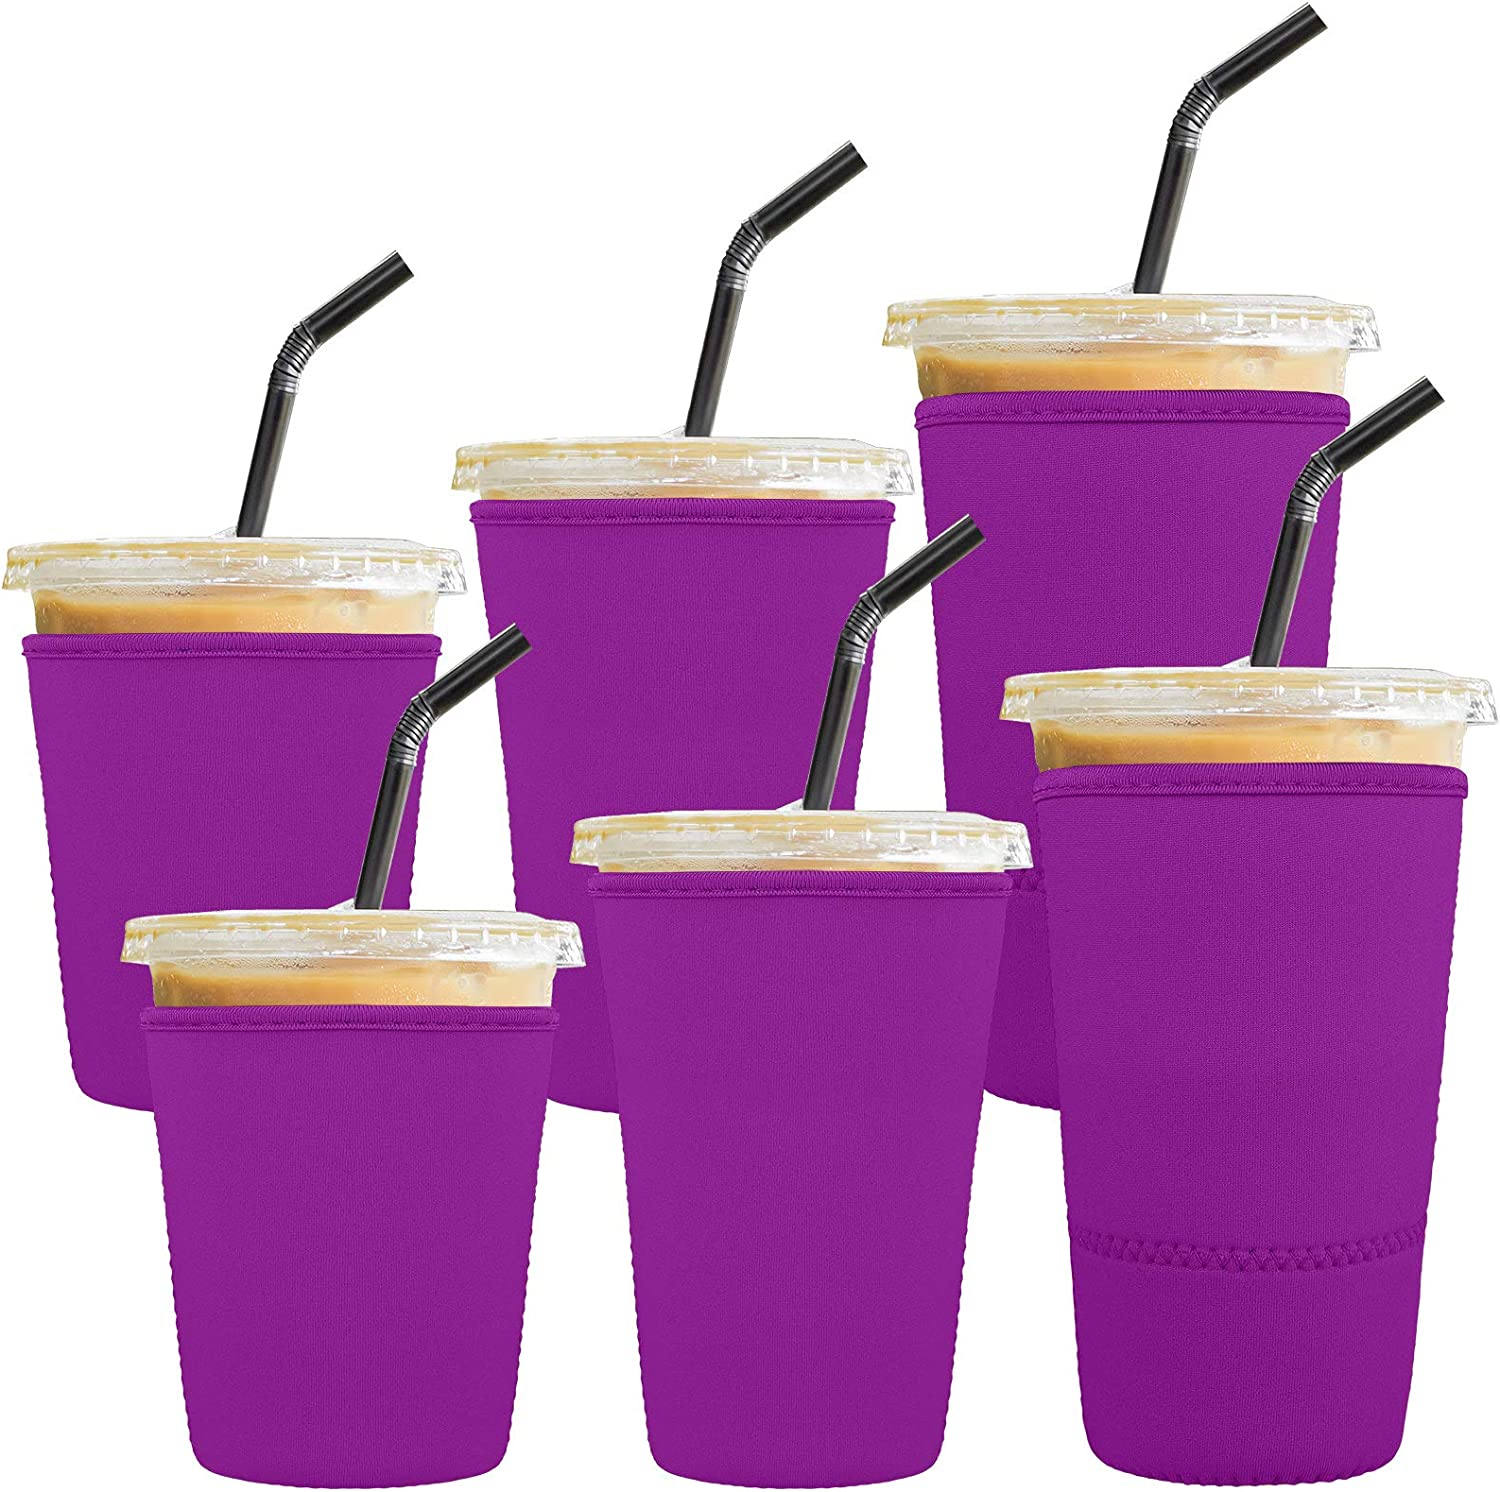 Ruisita 6 Pack Reusable Iced Coffee Sleeves Drink Insulator Sleeves Neoprene Cup Cover Drink Holders Cup Coolers for Cold Beverages, Coffee, Milktea, Purple